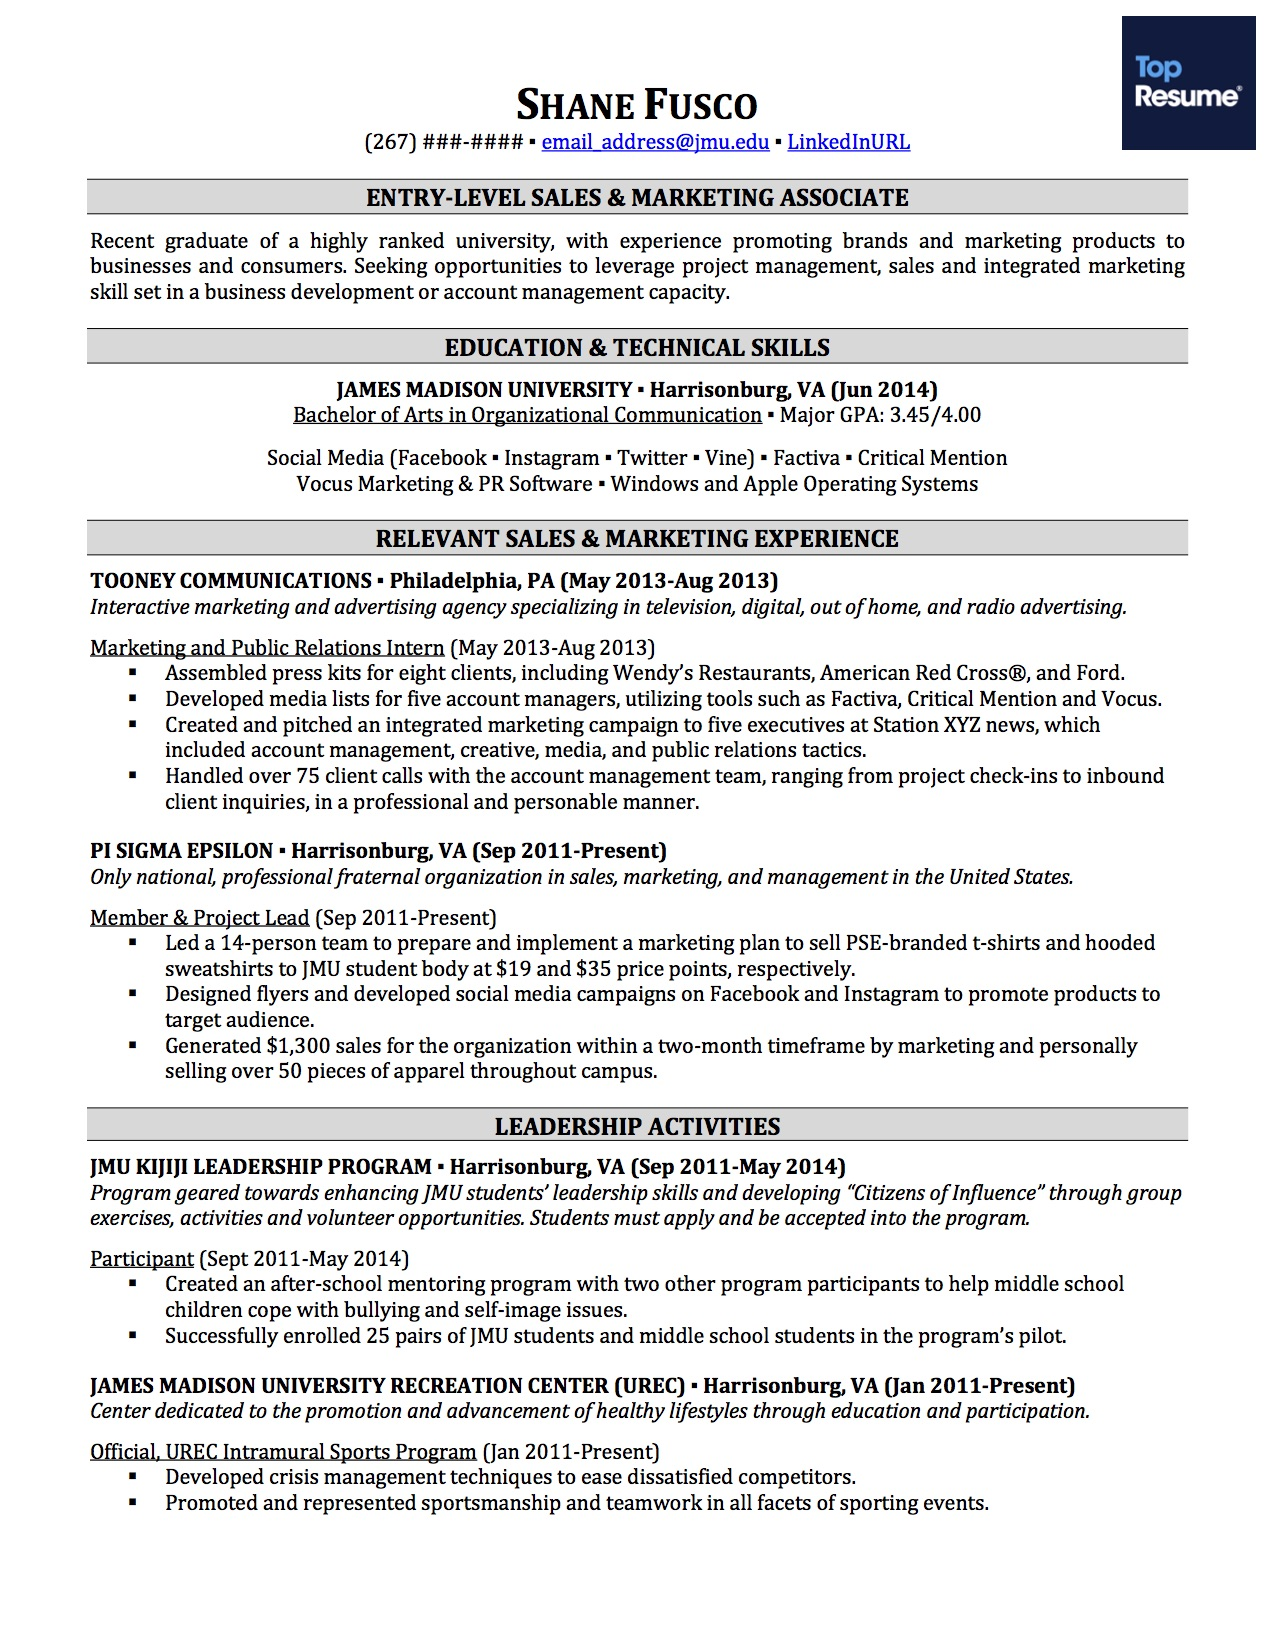 Format Of Resume For Student How To Write A Resume With No Job Experience Topresume